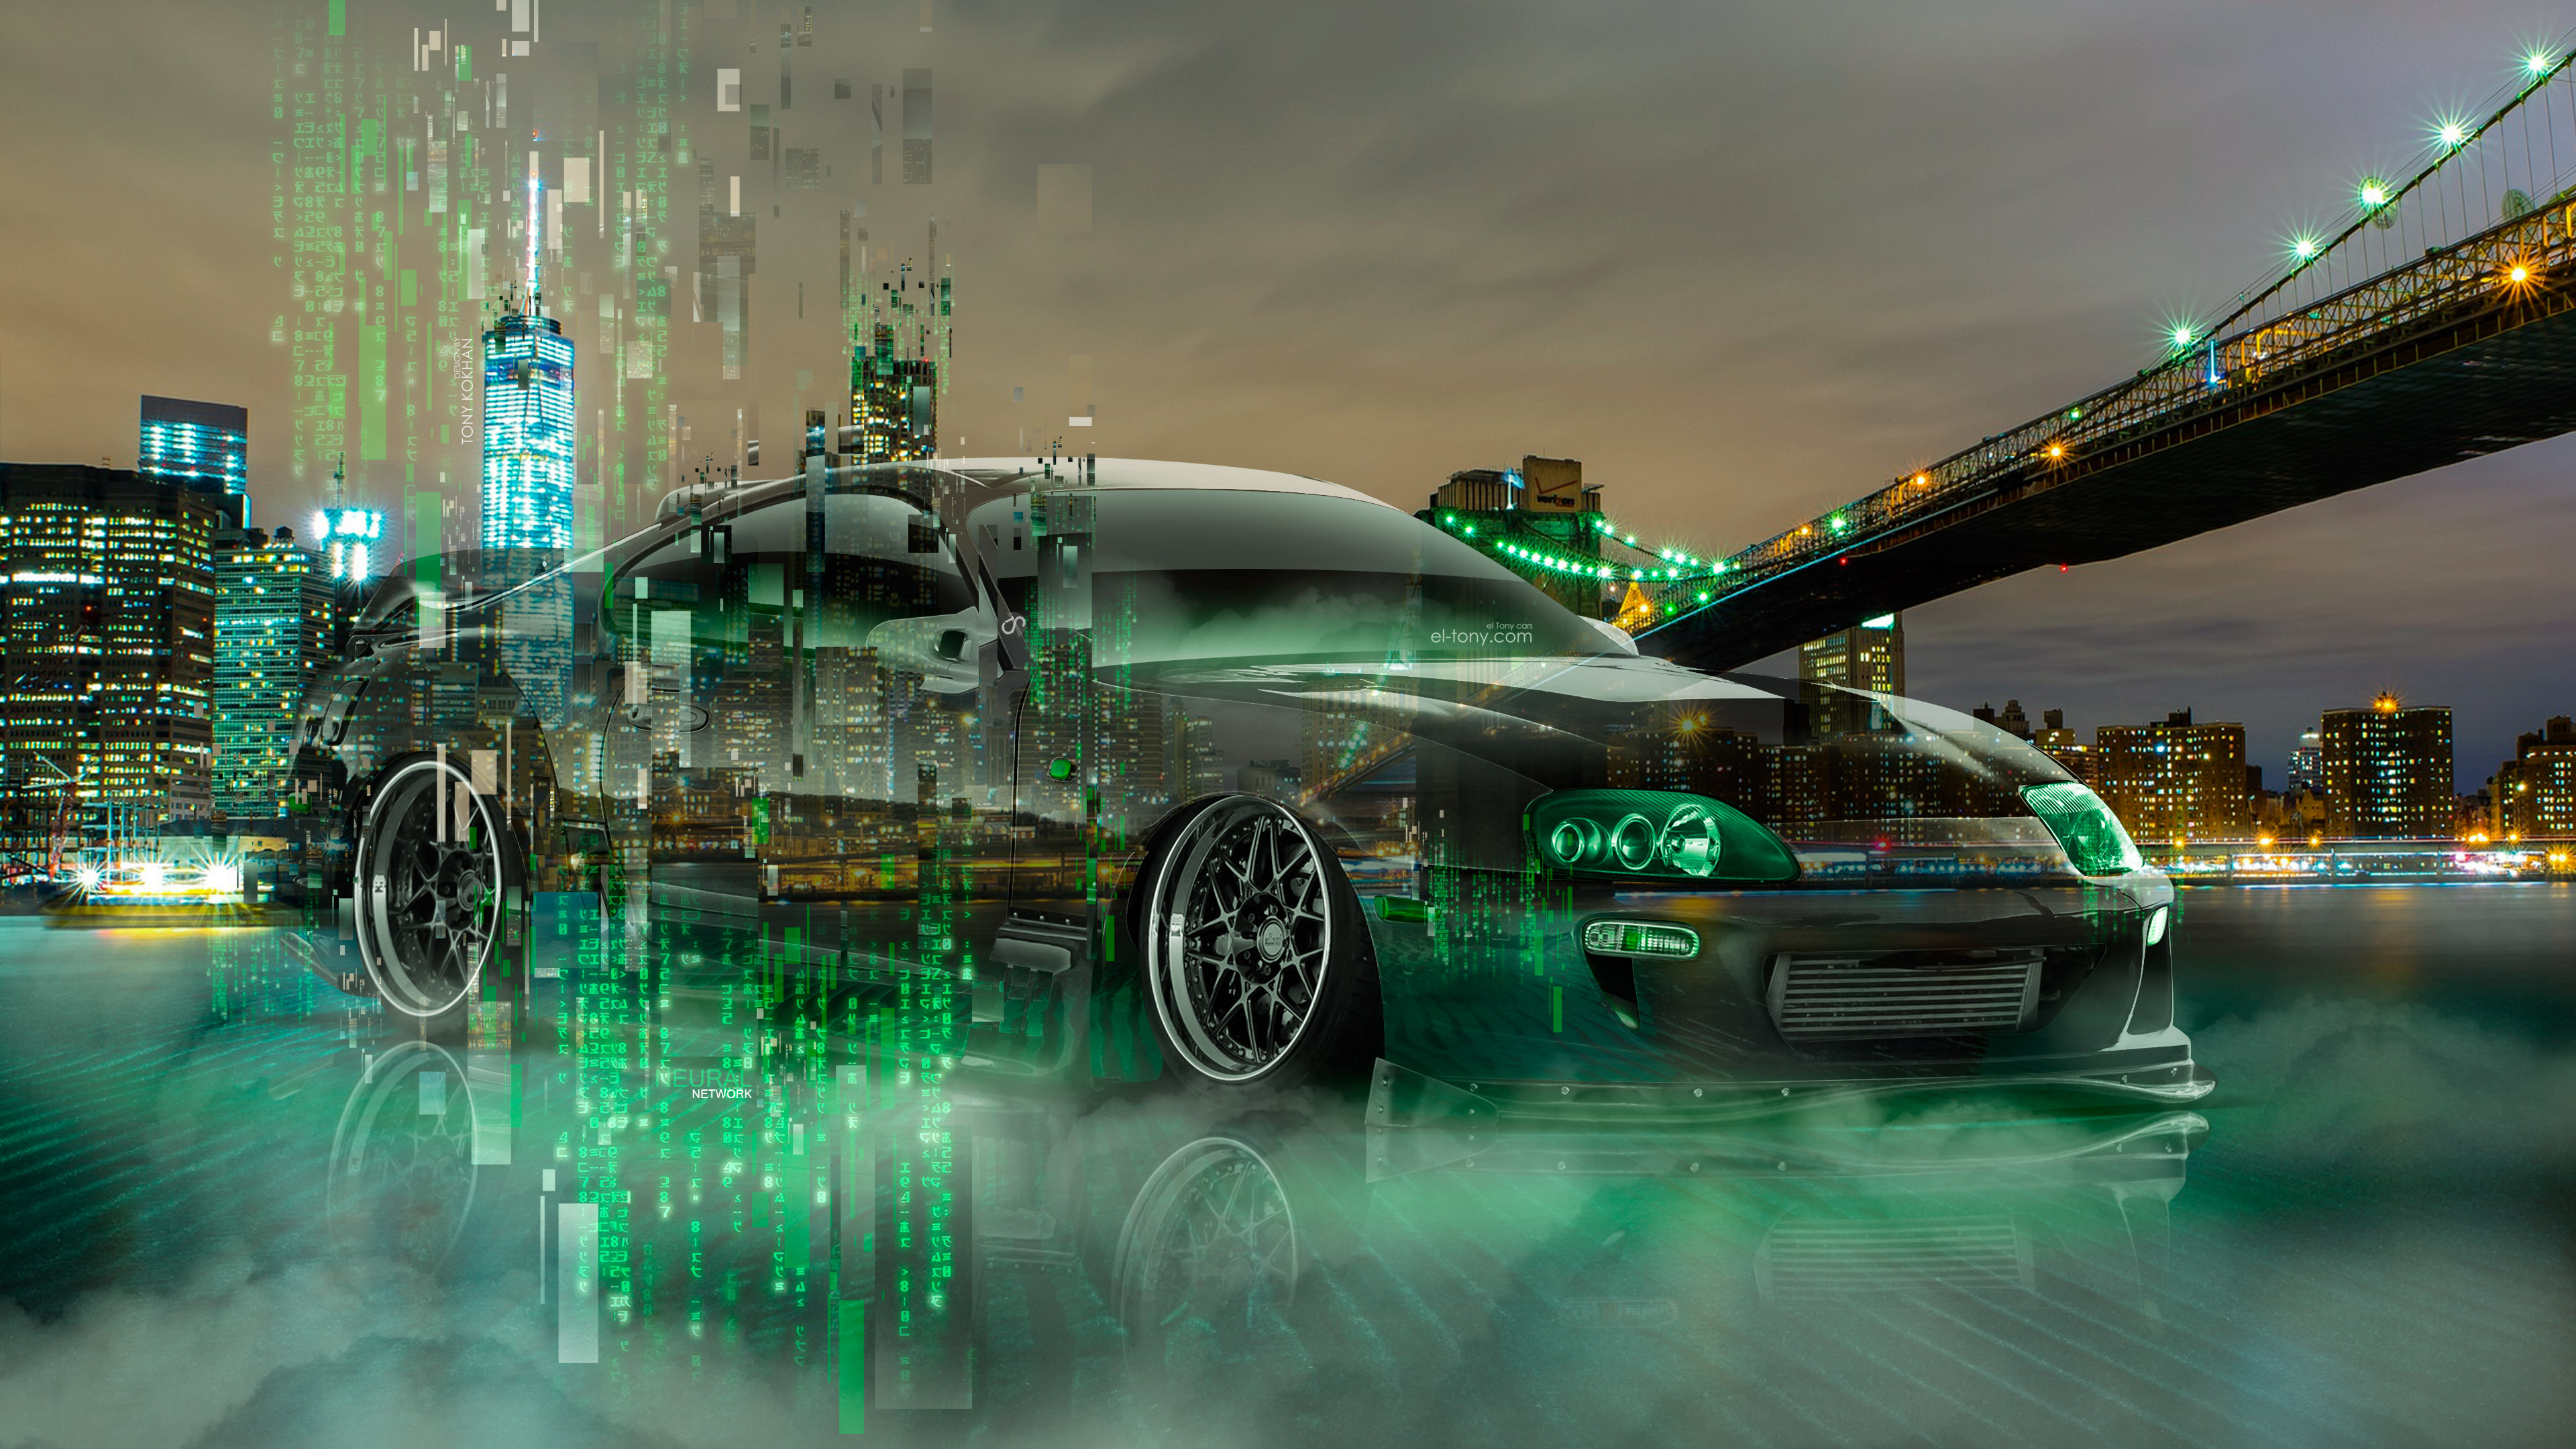 Elegant ... Toyota Supra JDM Tuning New York City Neural Network Matrix Night Art  Car 2018